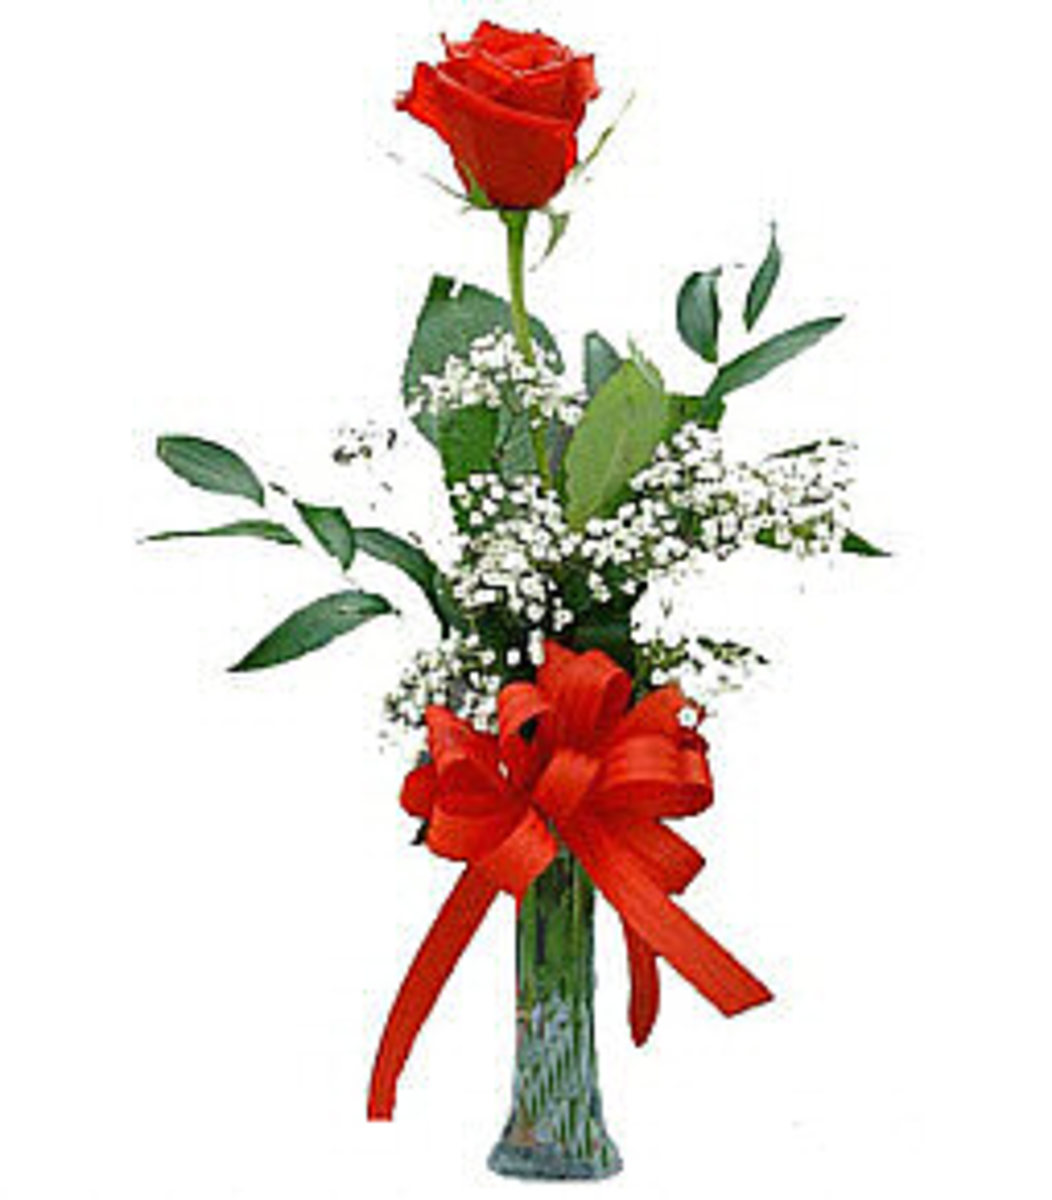 A red rose for Valentine's Day